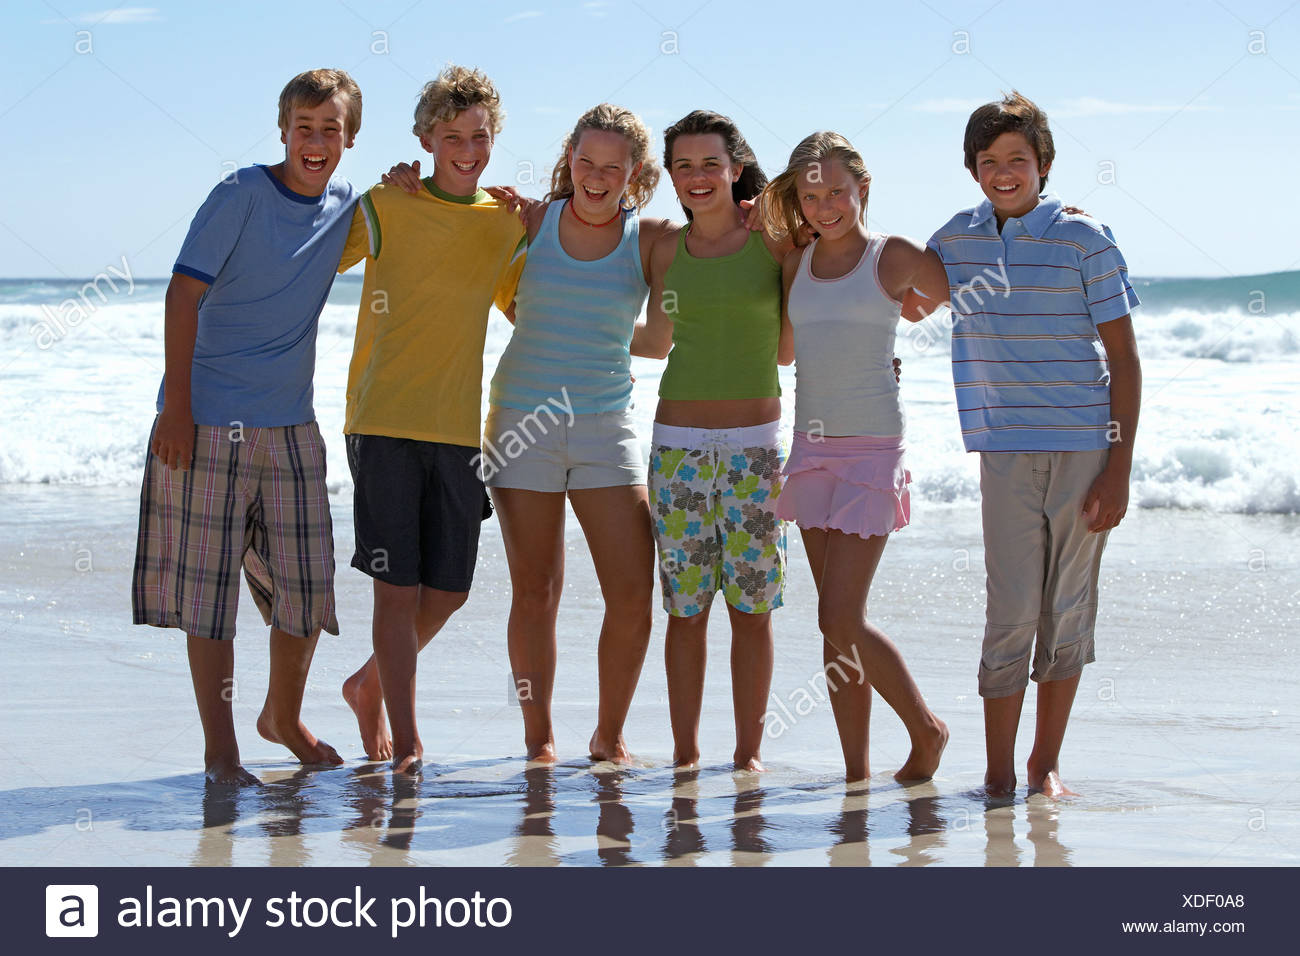 Group of teenagers 12 15 standing on sandy beach side by side smiling portrait - Stock Image